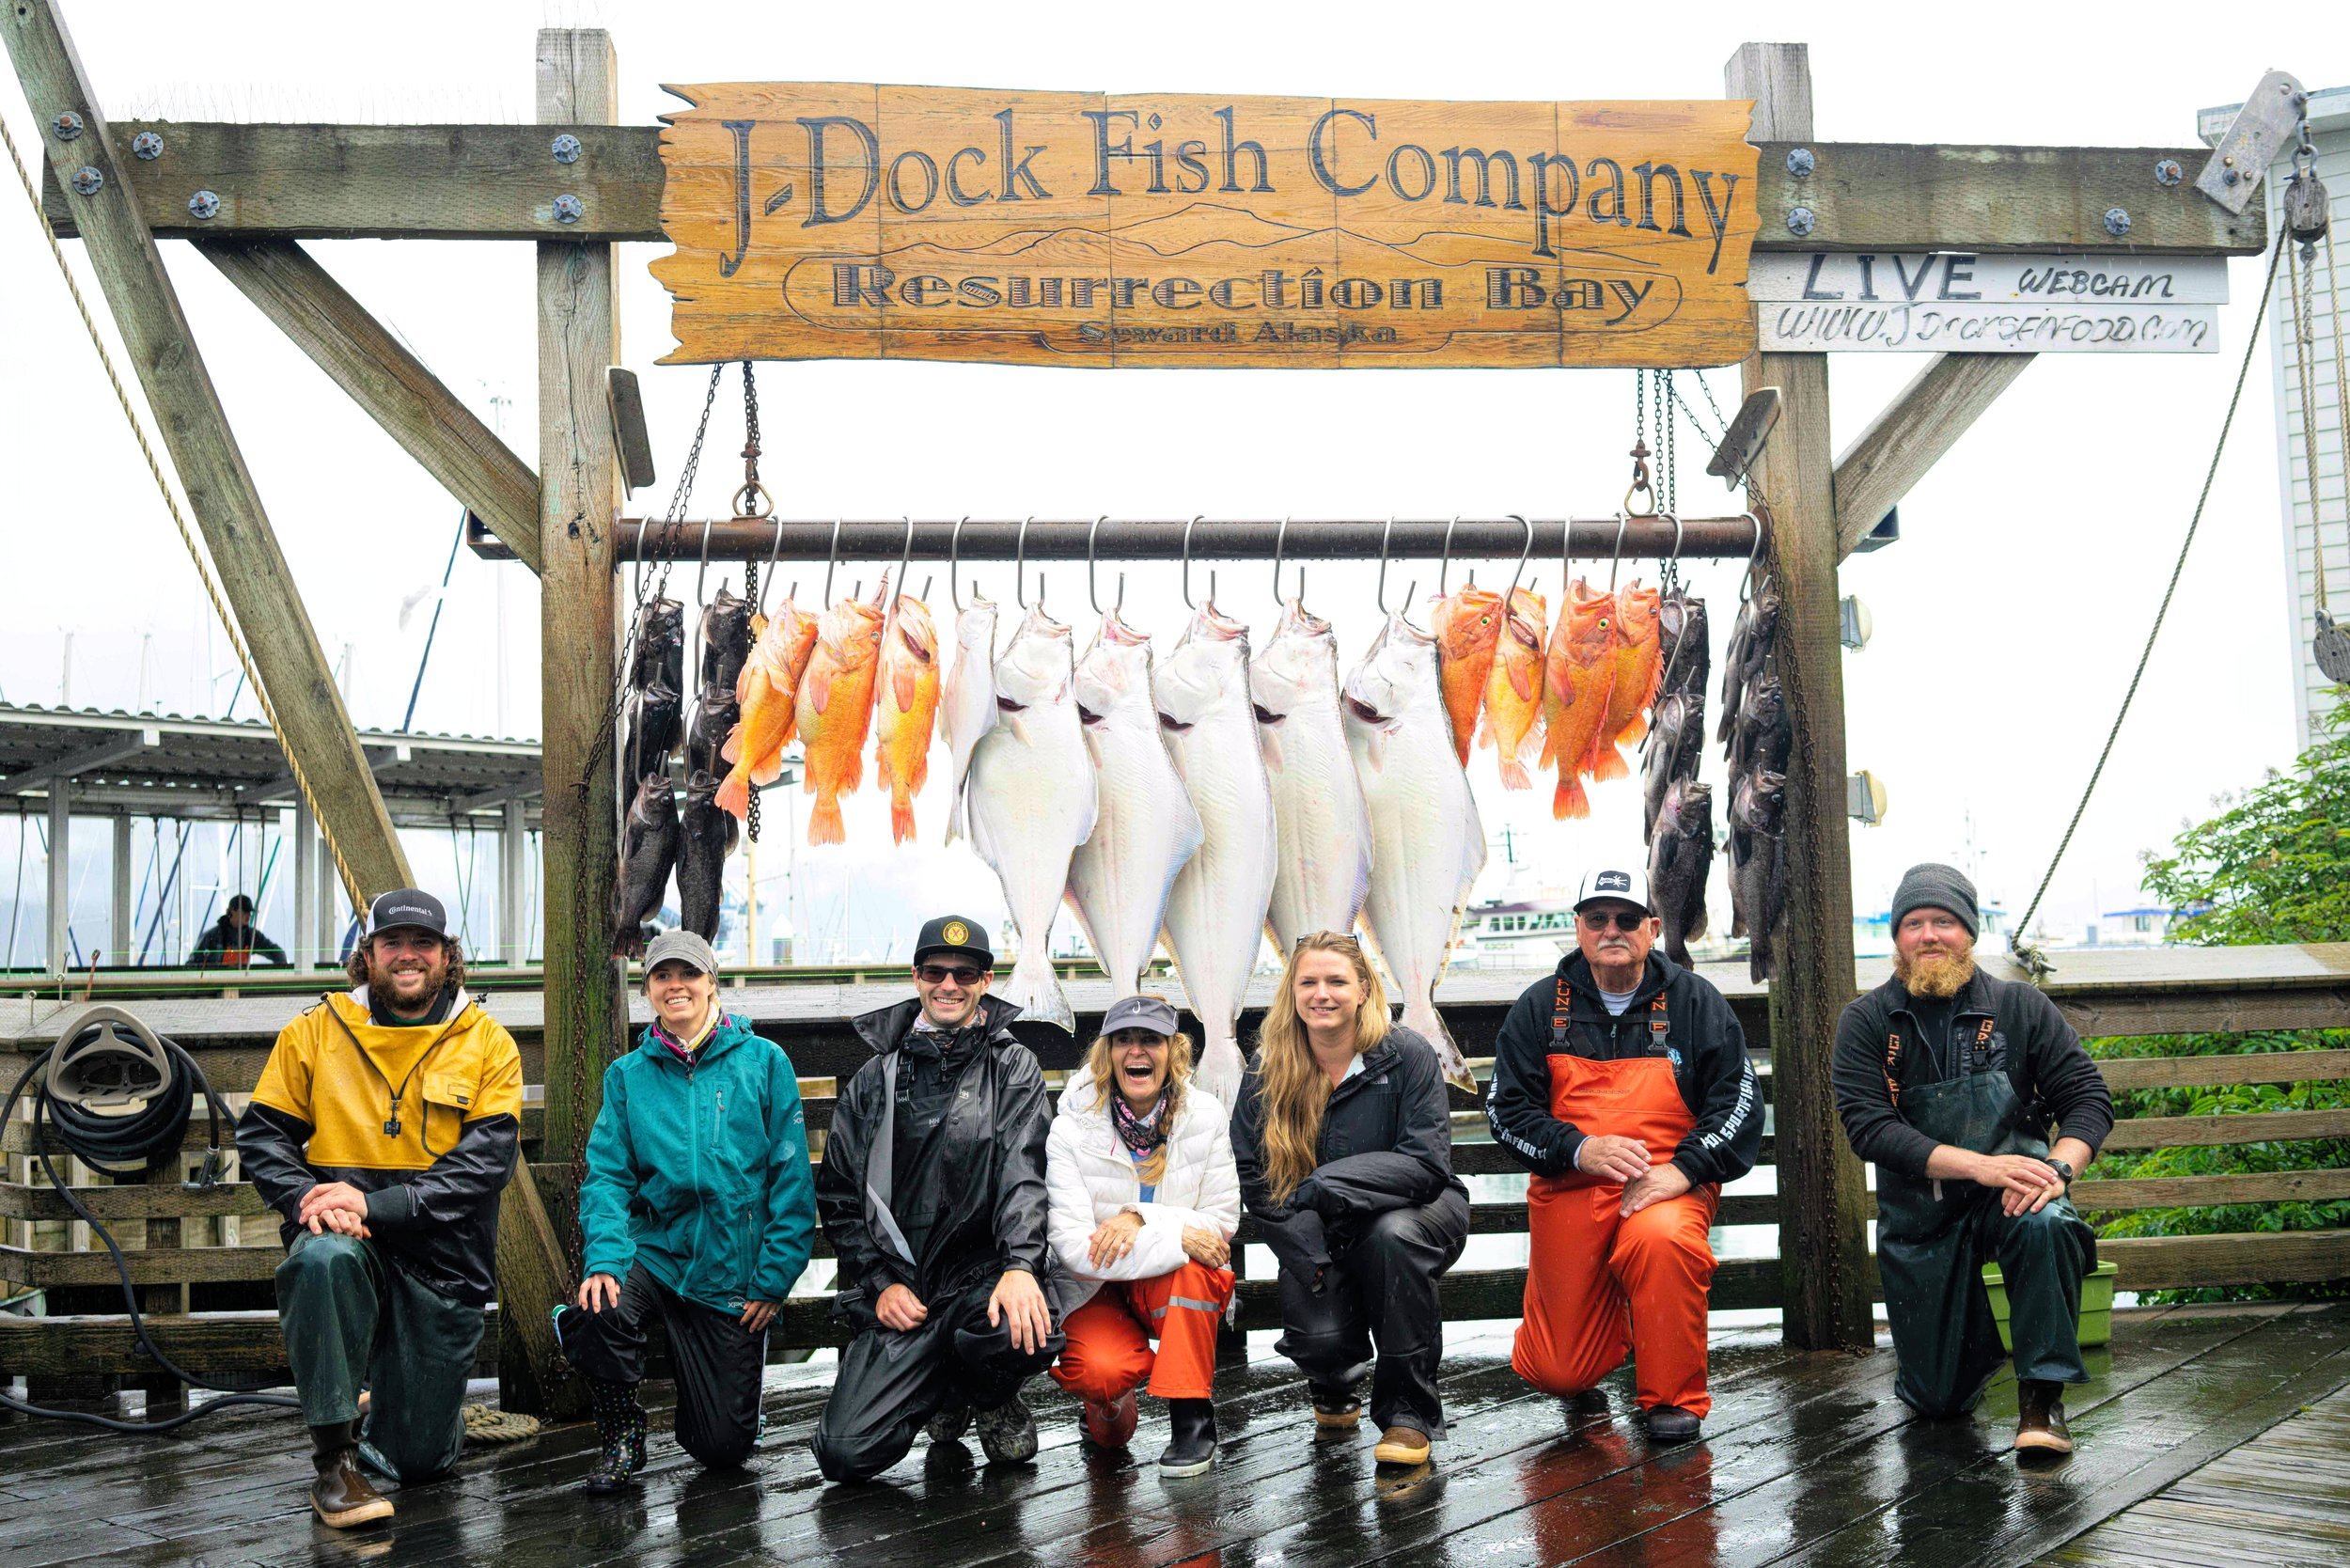 MAY SPECIAL!!! - halibut/rockfishmay 9-may 31$295/person